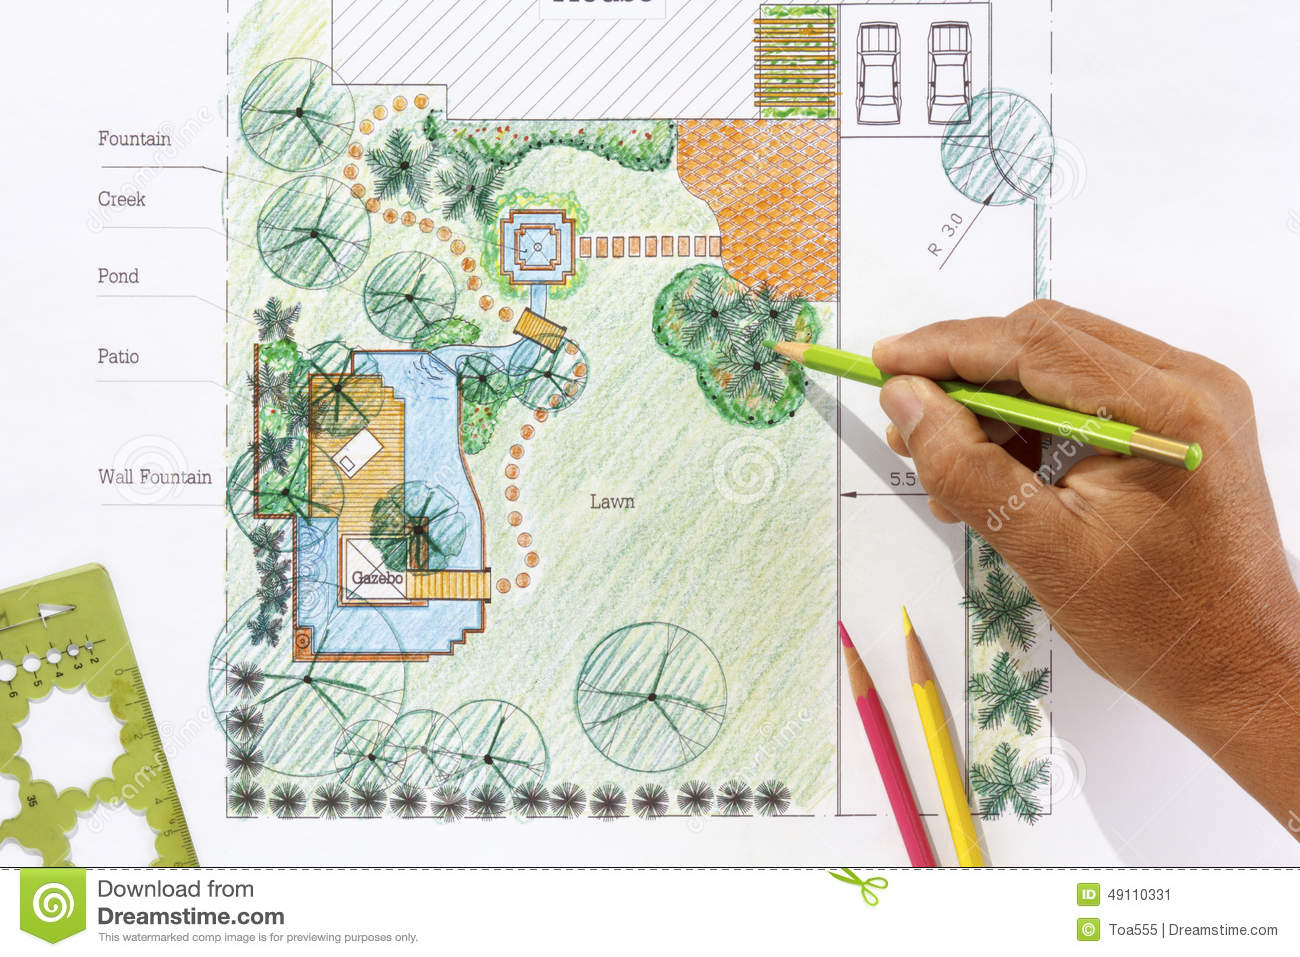 Landscape architect design water garden plans stock photo for How to design garden layout